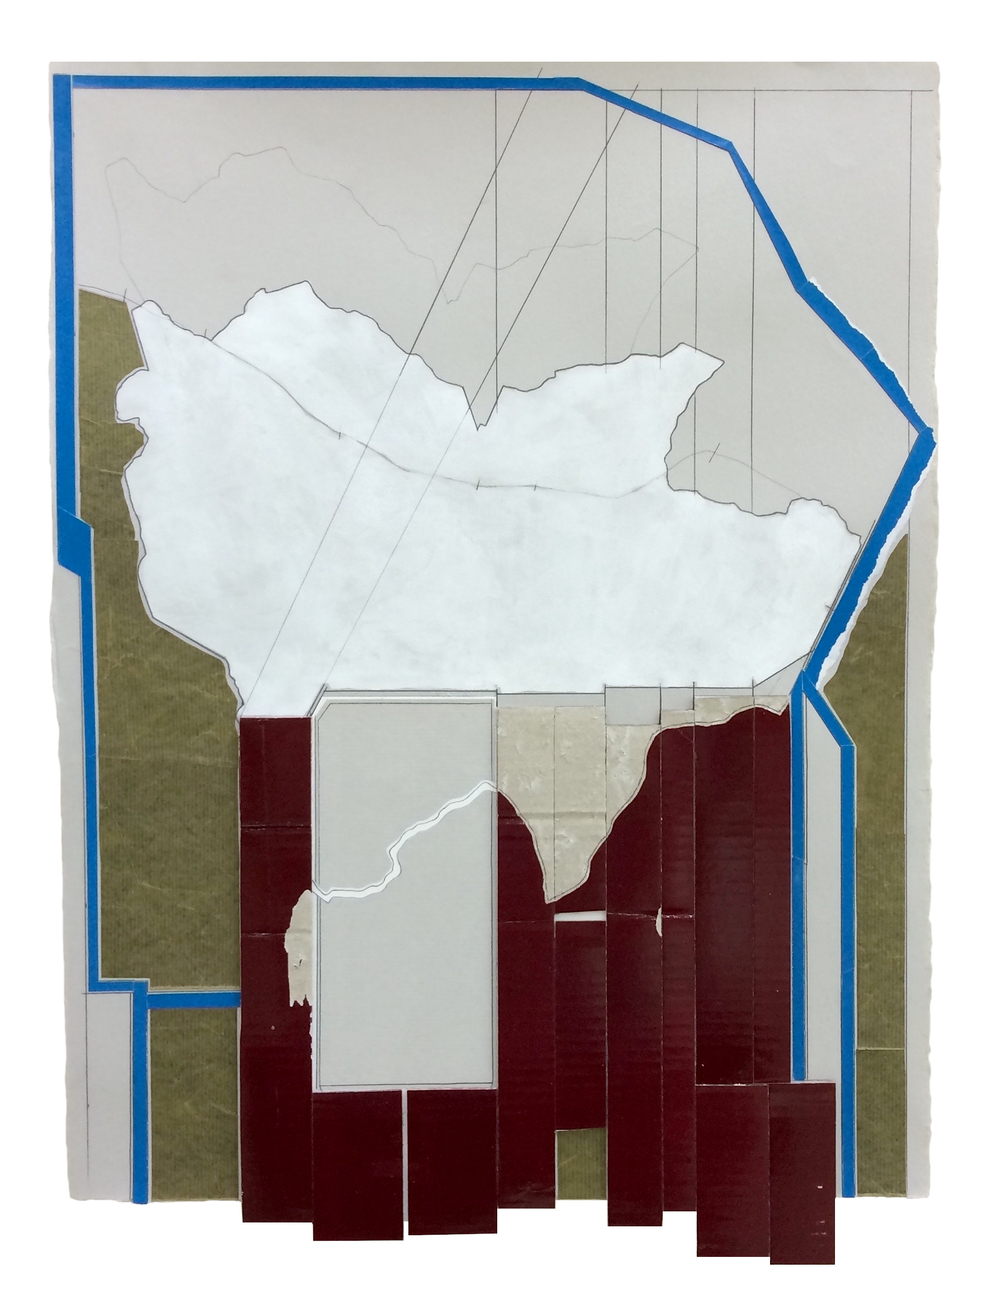 Perimeter , 2016  Collage, gouache, pencil on paper  26 3/4 x 19 1/4 inches